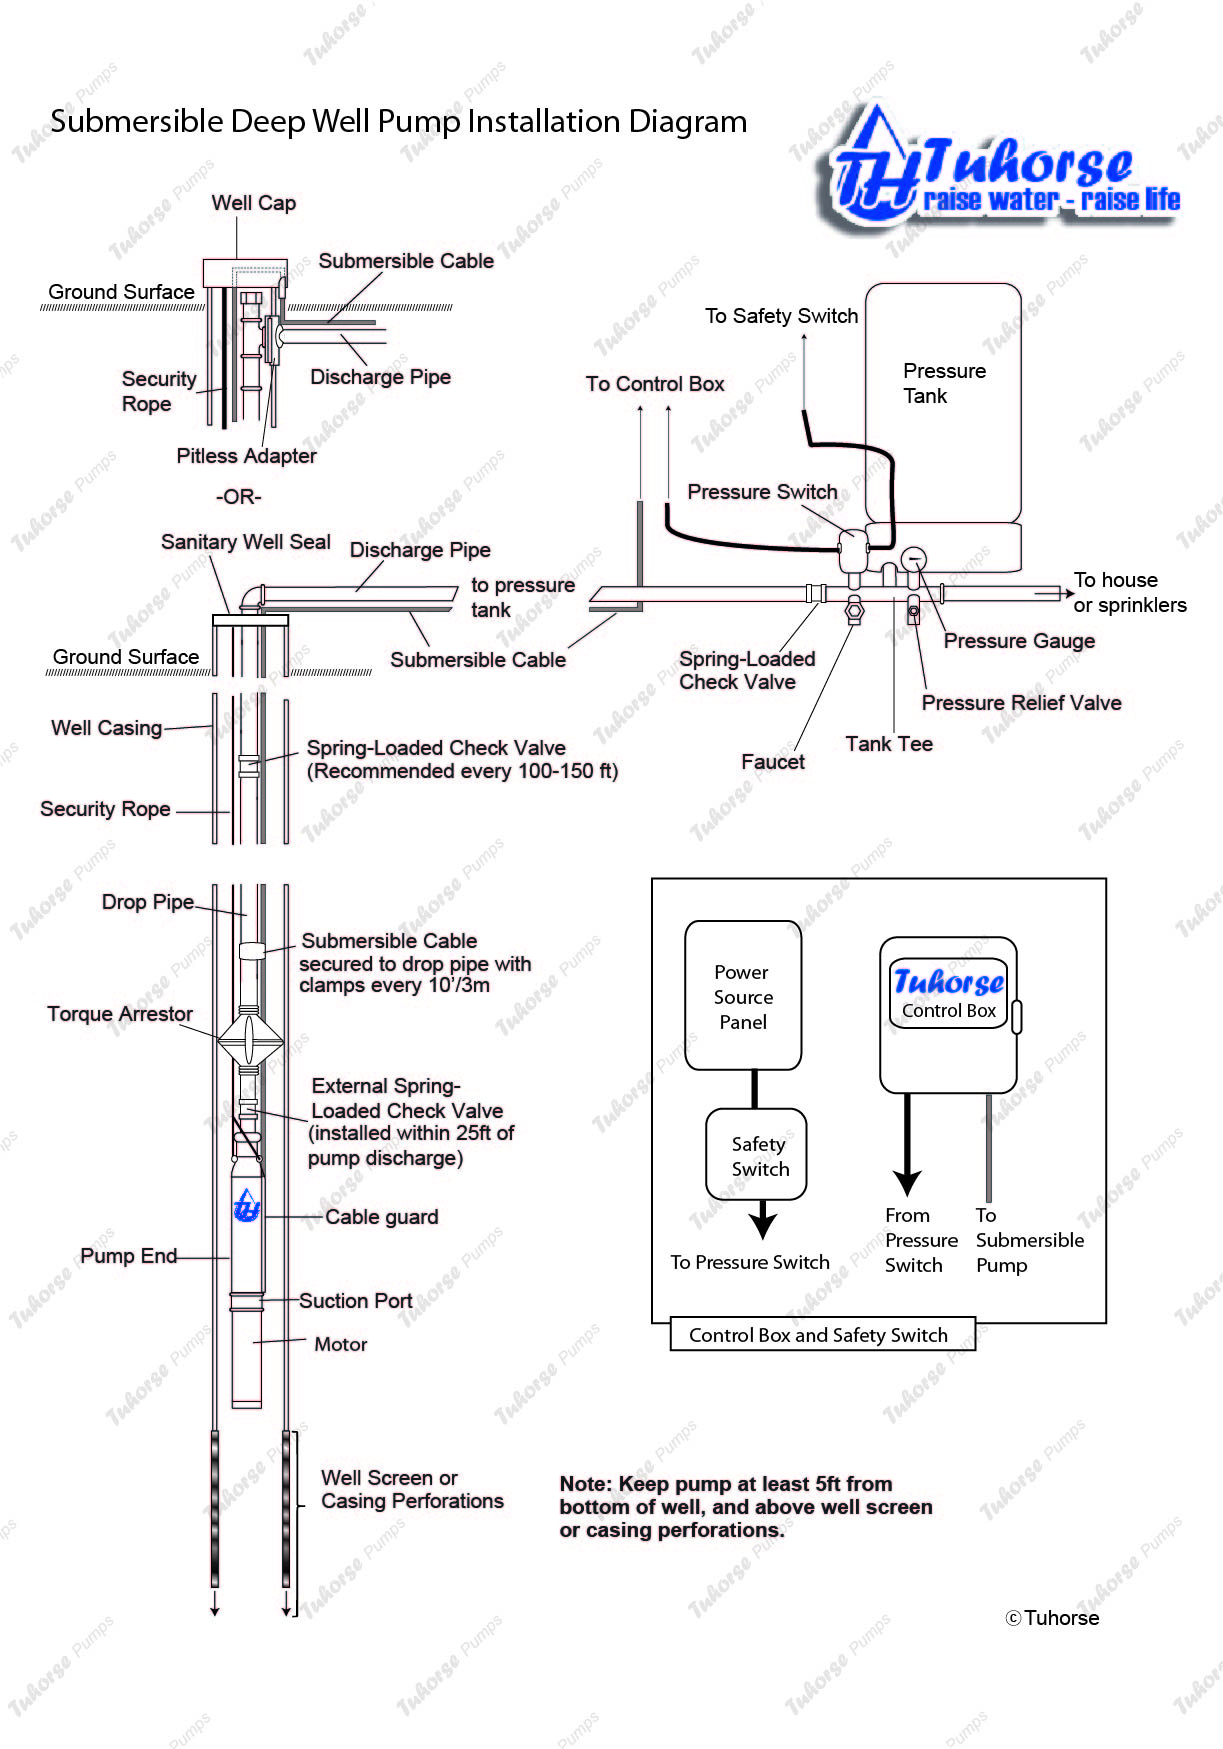 watermarkedinstallationdiagram4 pump installation sprinkler pump wiring diagram at soozxer.org